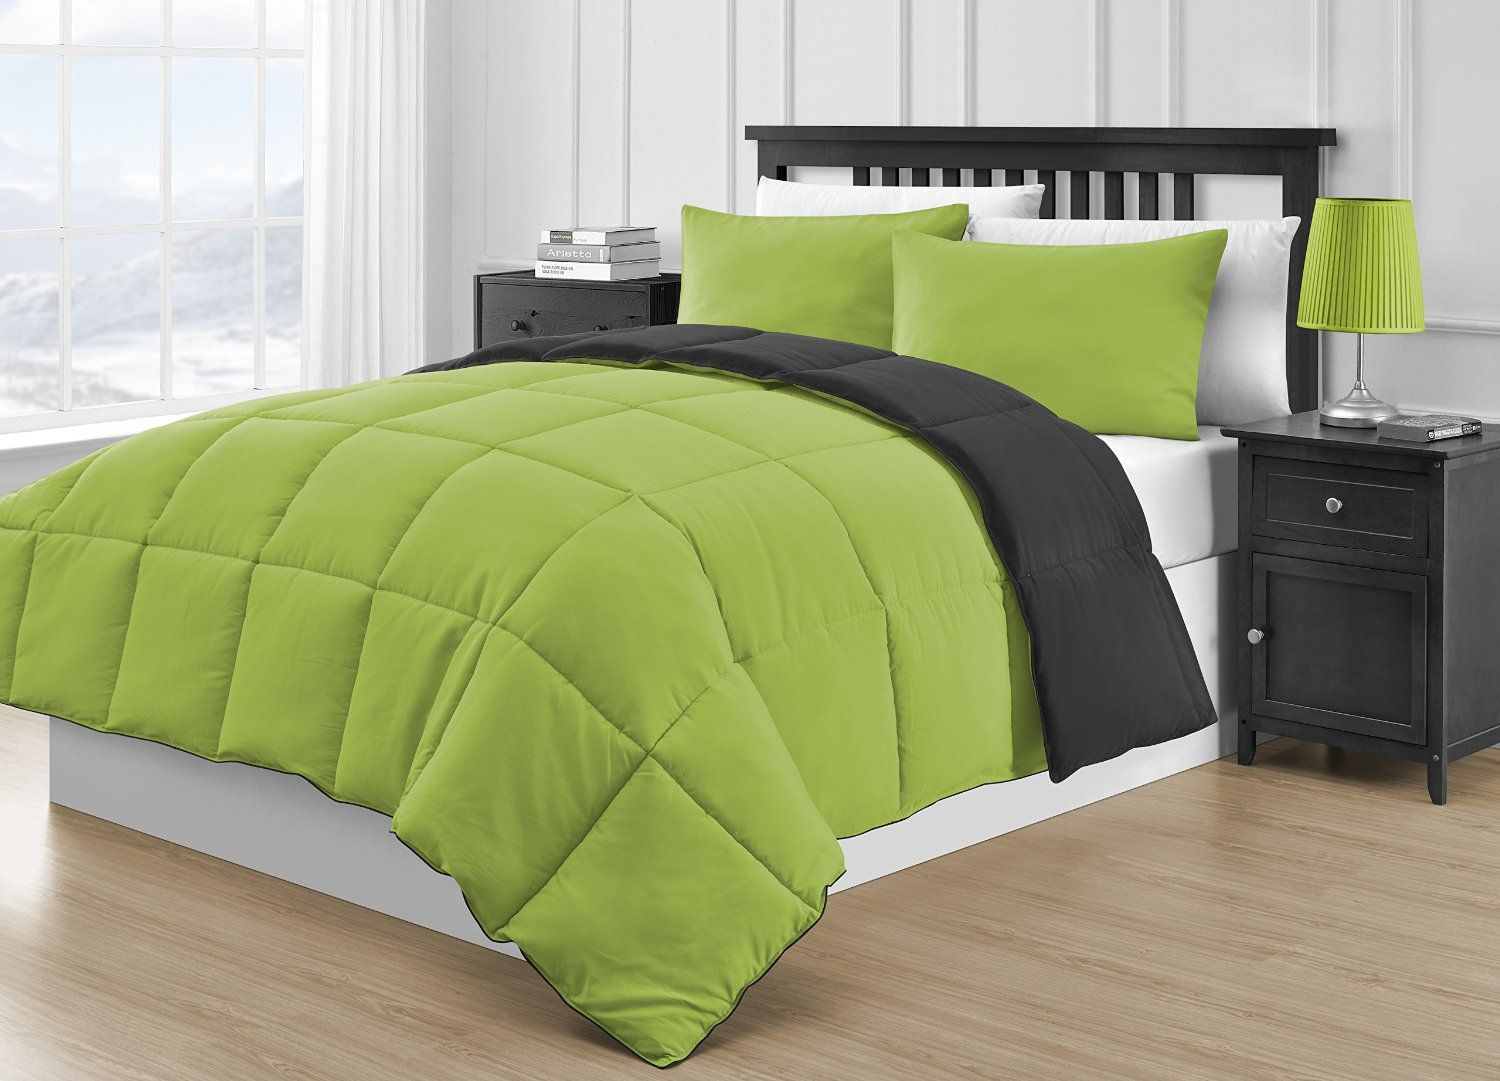 lime green bedding lime green comforter sets  lime green sheets  - lime green bedding lime green comforter sets  lime green sheets